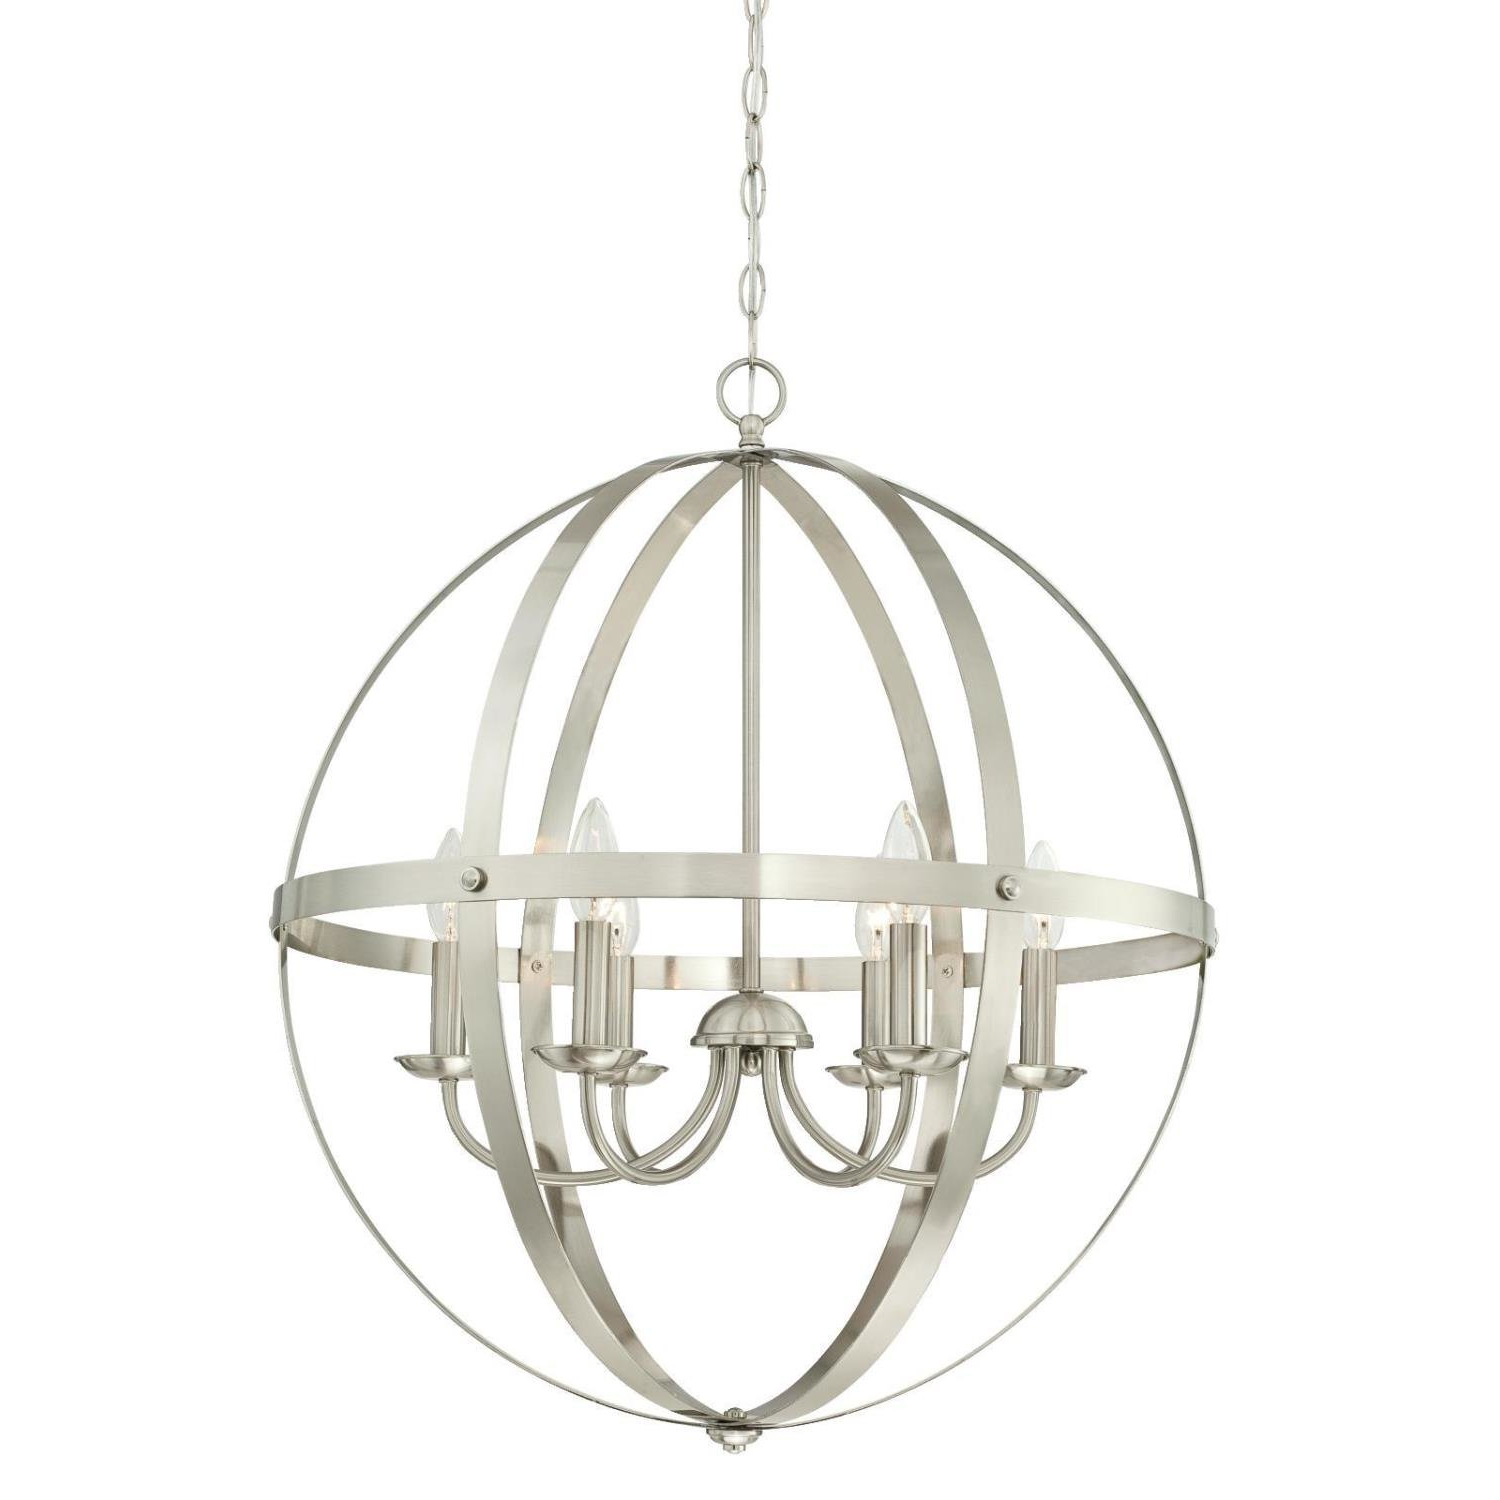 Preferred Donna 6 Light Globe Chandeliers Intended For Joon 6 Light Globe Chandelier (View 12 of 20)